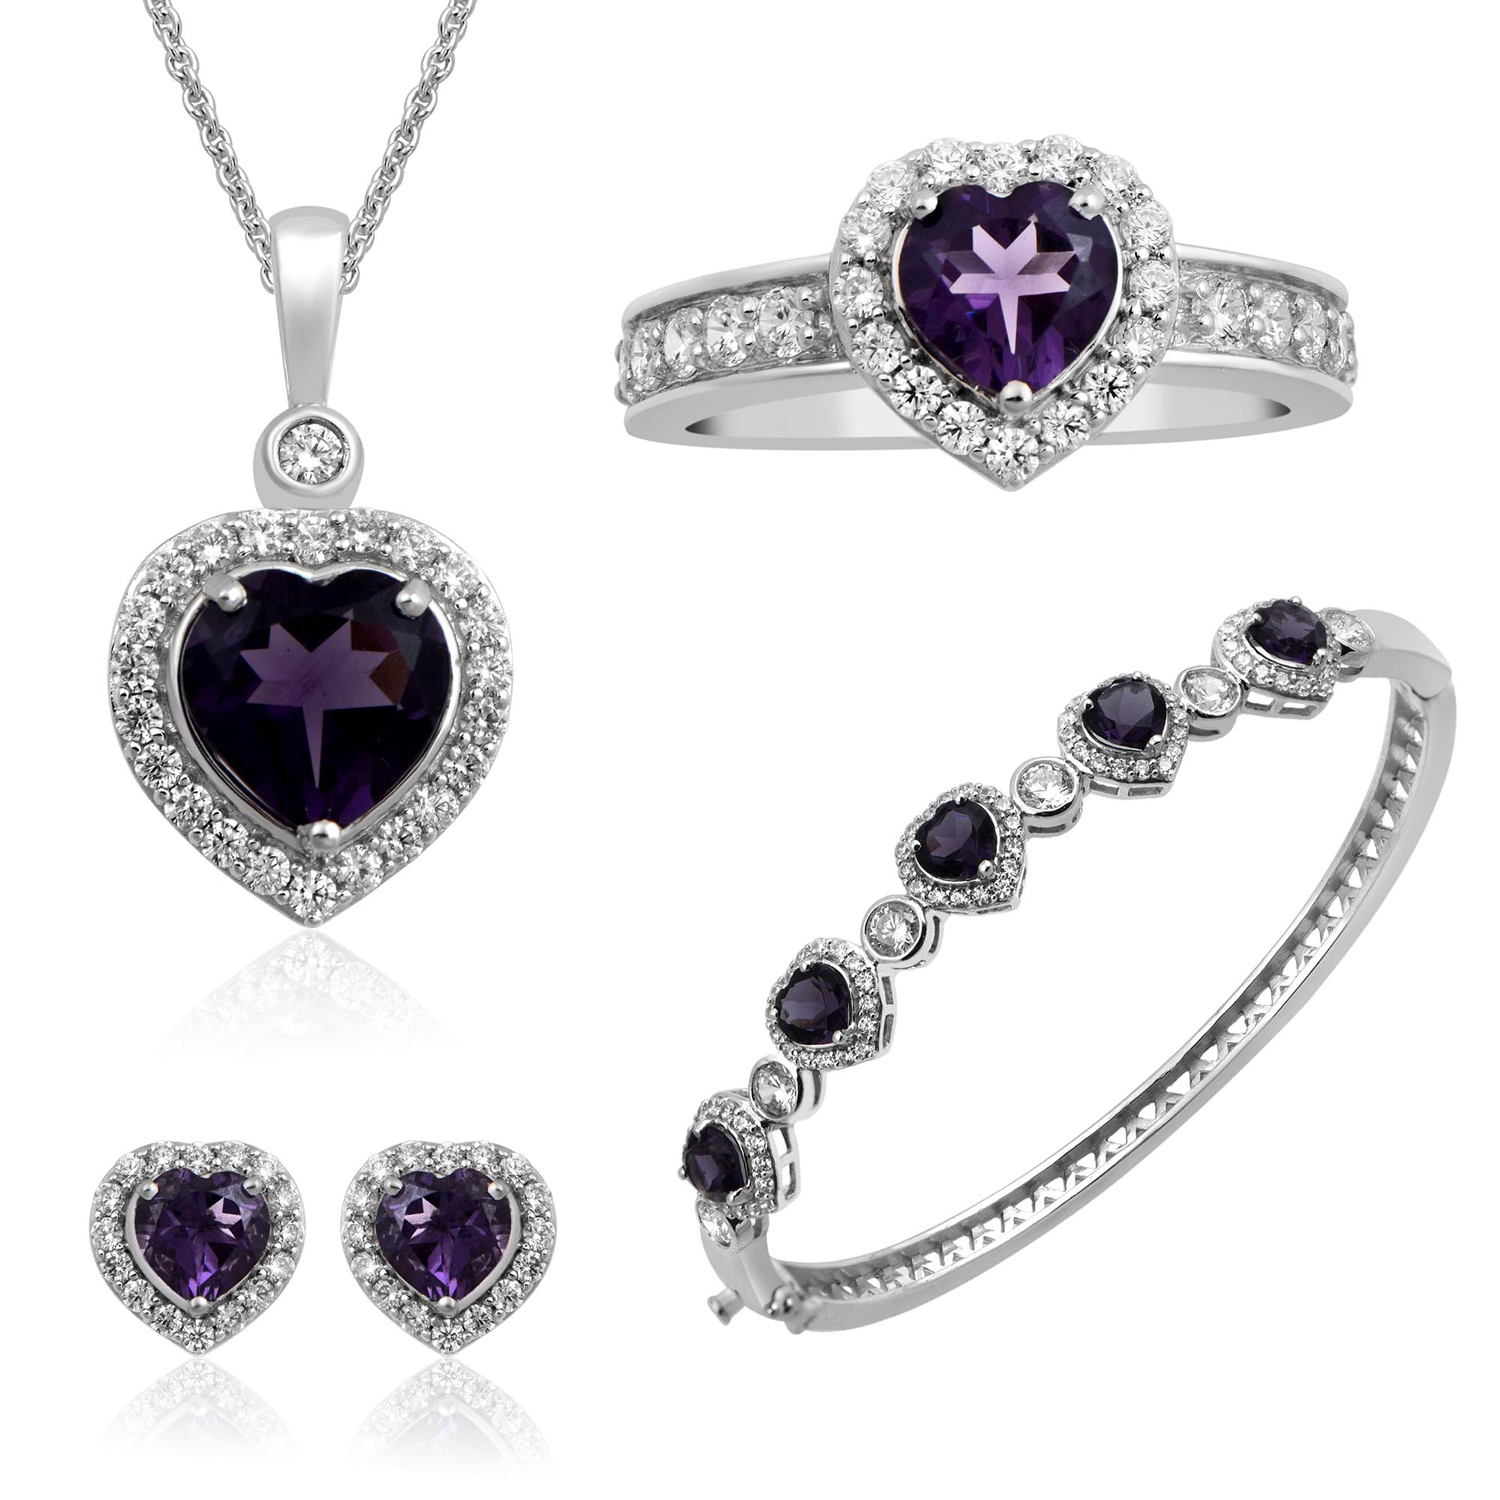 Sterling Silver & Brass Sim Amethyst Heart With White Cubic Zirconia Four Piece Box Set Consisting of Ring, Pendant,... by Generic